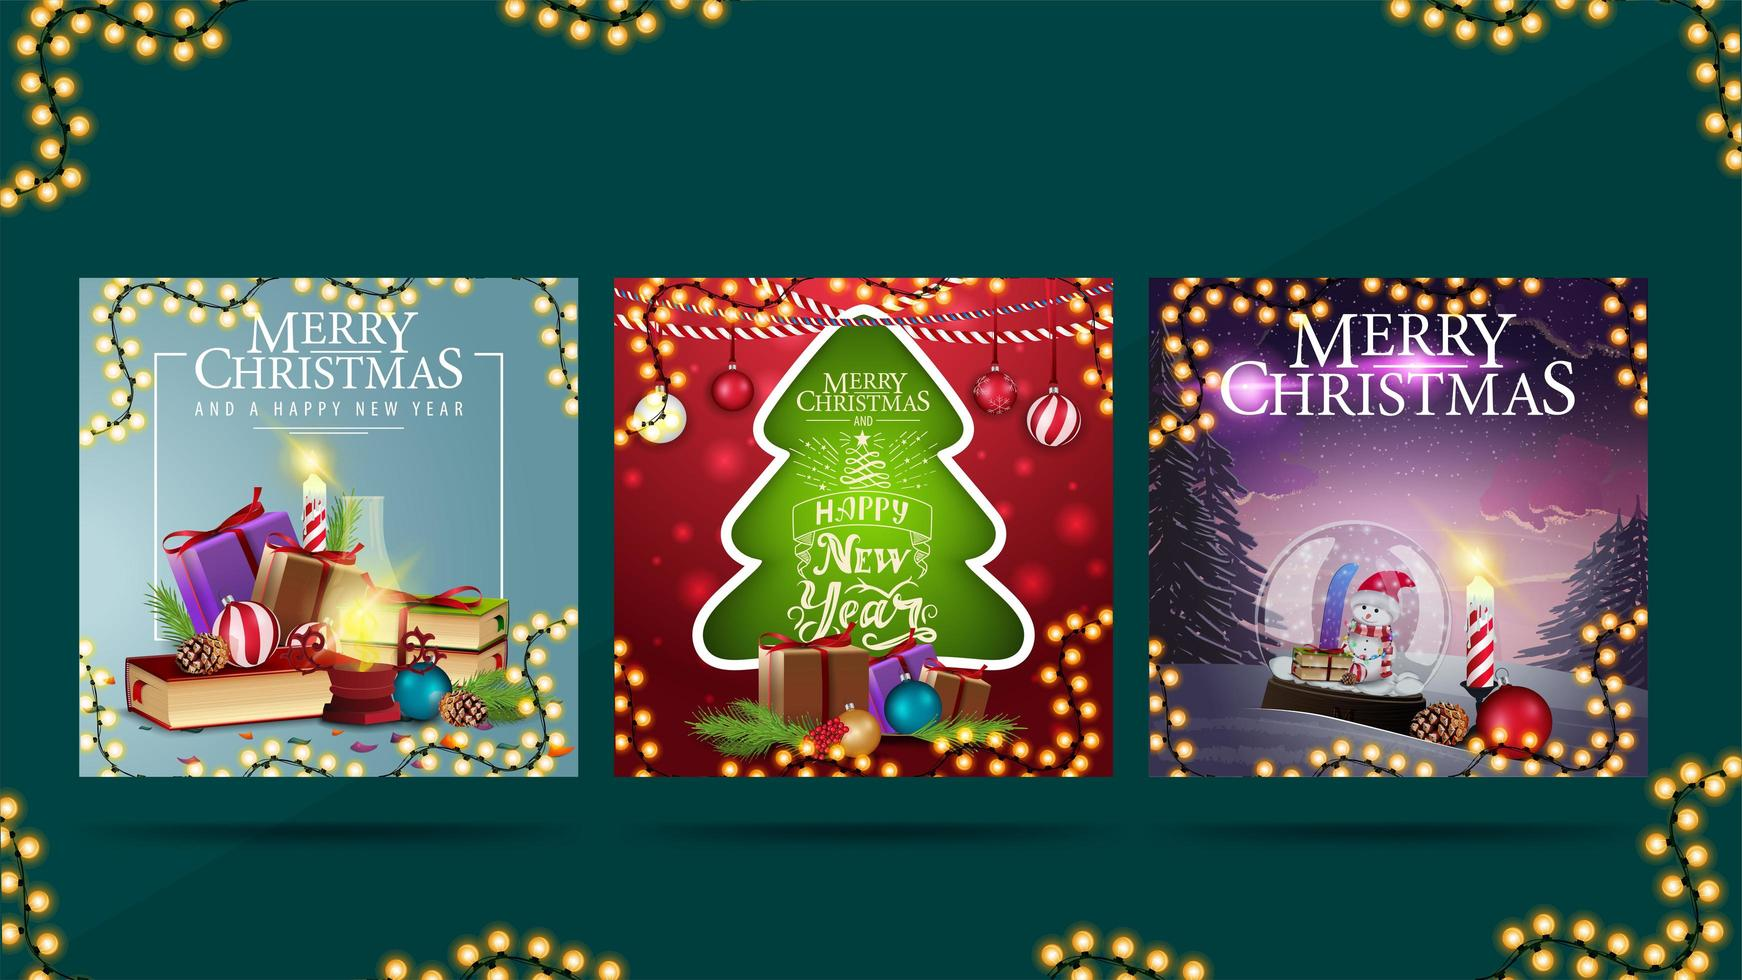 Merry Christmas, set of greeting postcards with Christmas presents. Christmas square cards ready for print vector